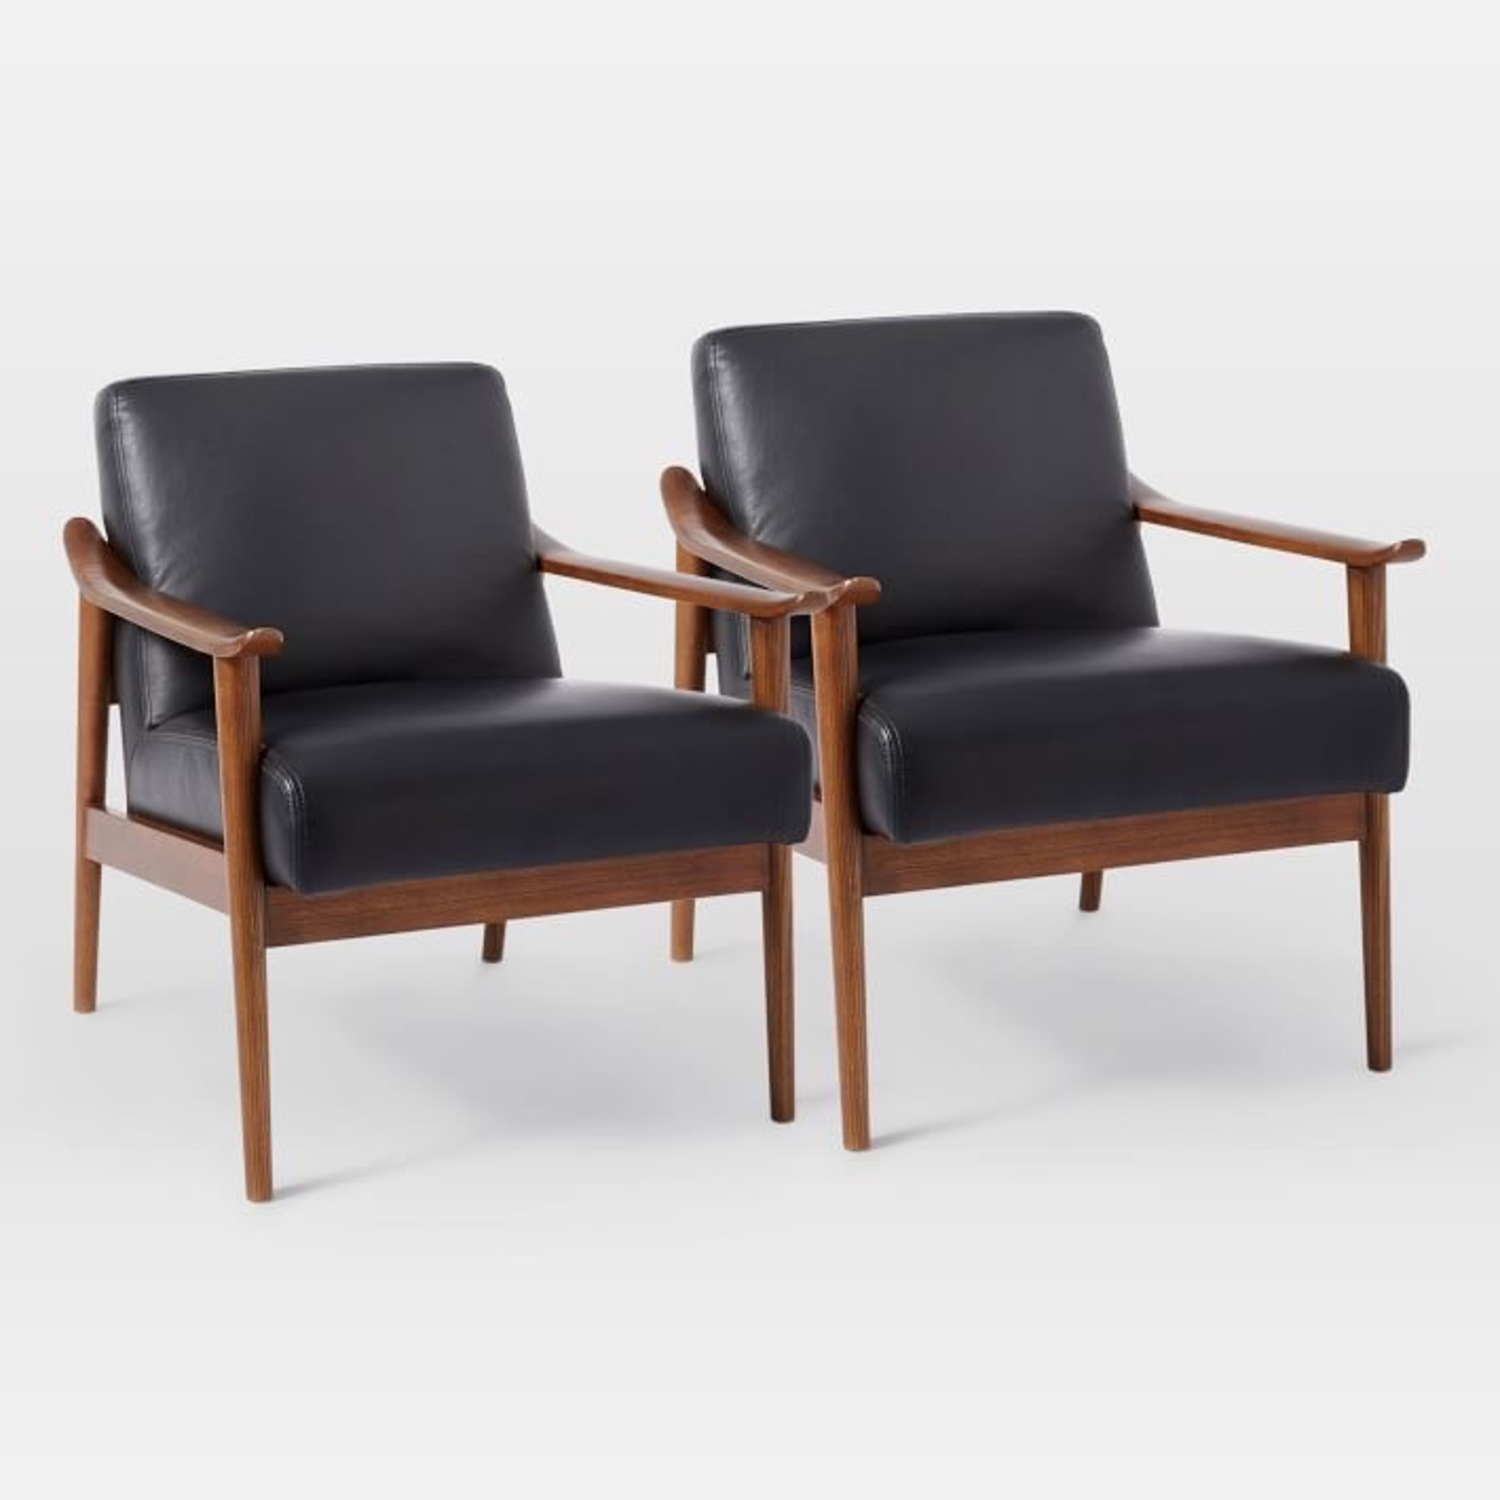 West Elm Mid-Century Leather Wood Chair - image-7